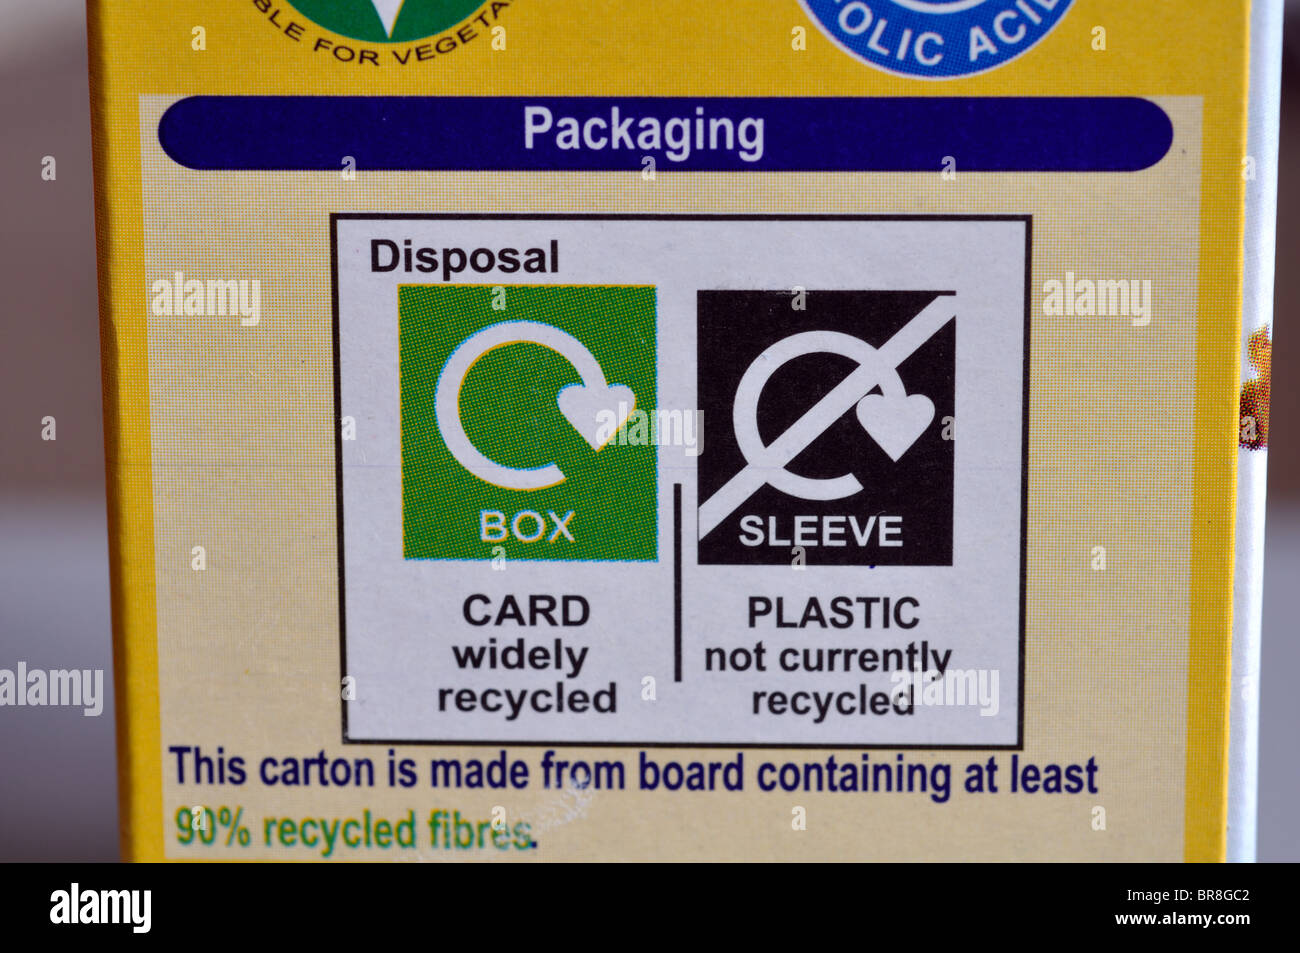 Recycling information on packaging - Stock Image